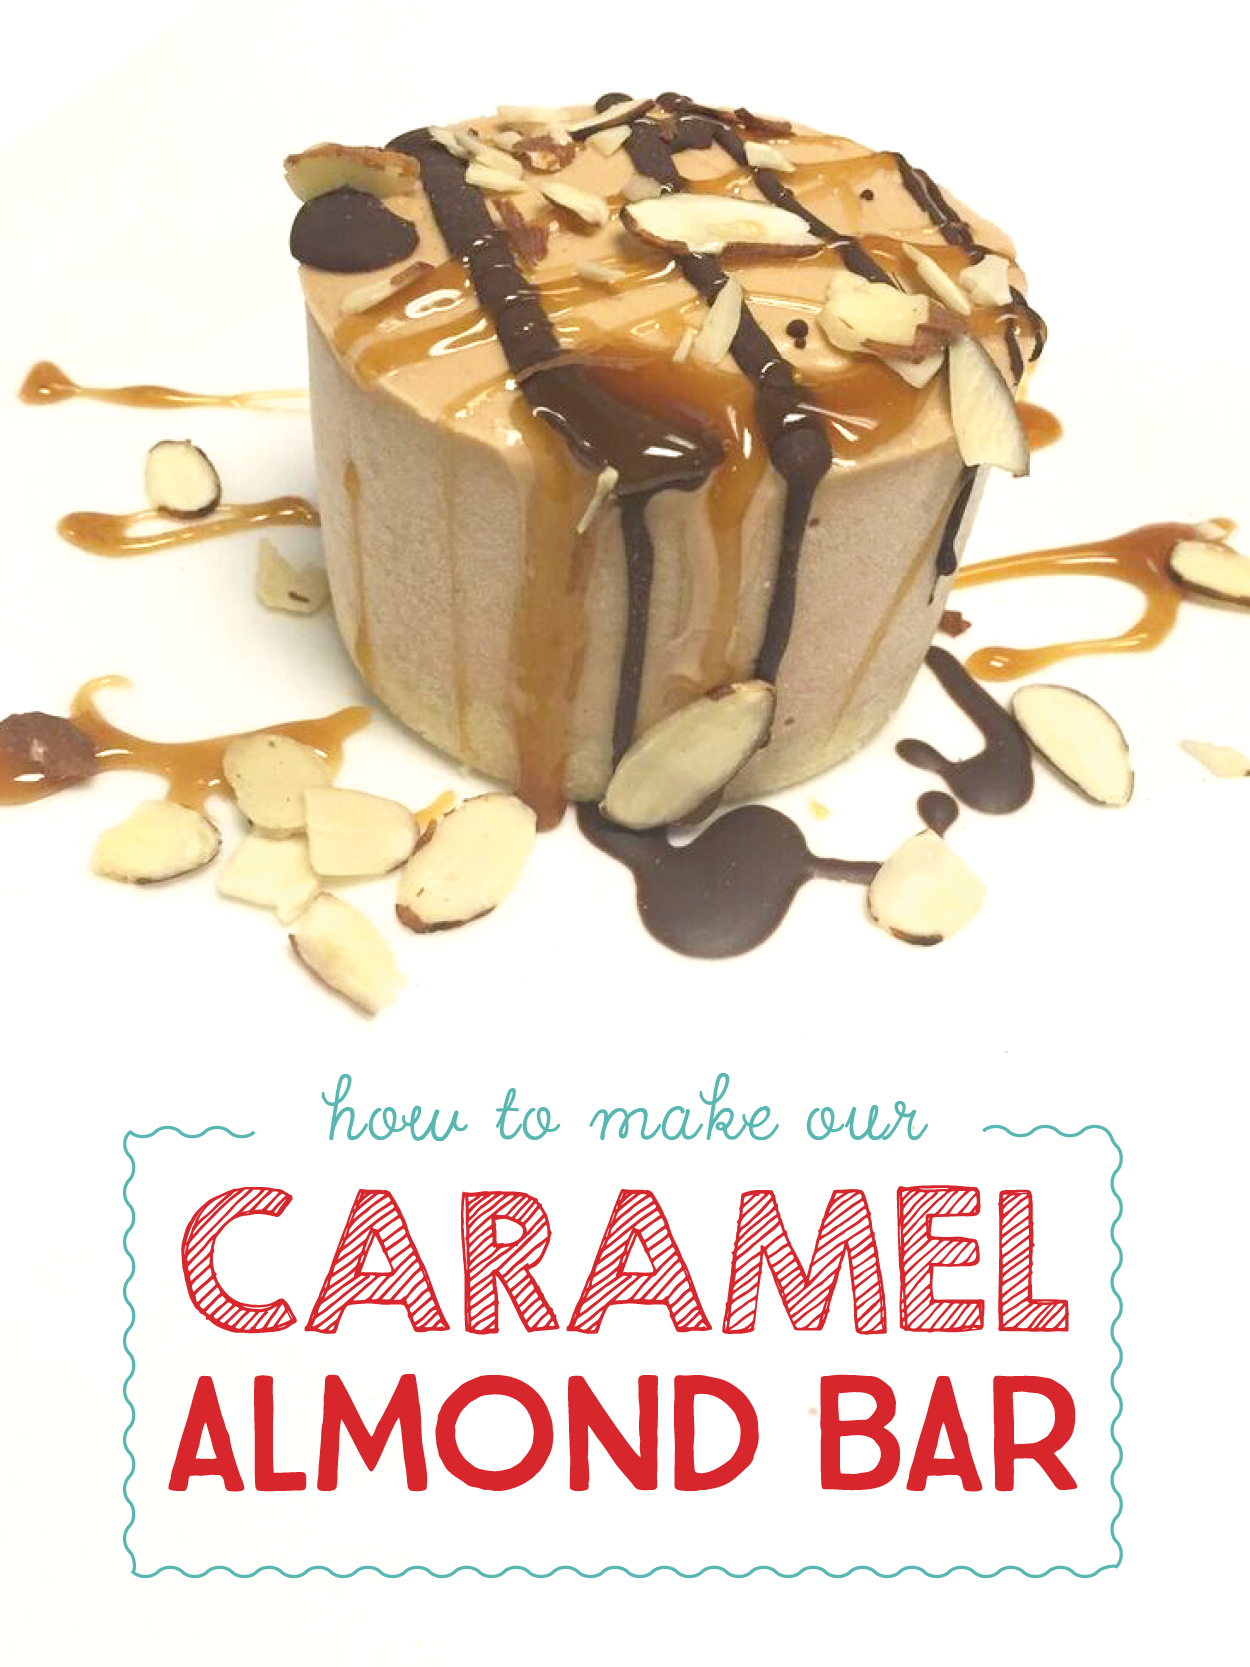 ... Caramel Almond Bar with Shortbread Cookie Crust. For the full recipe